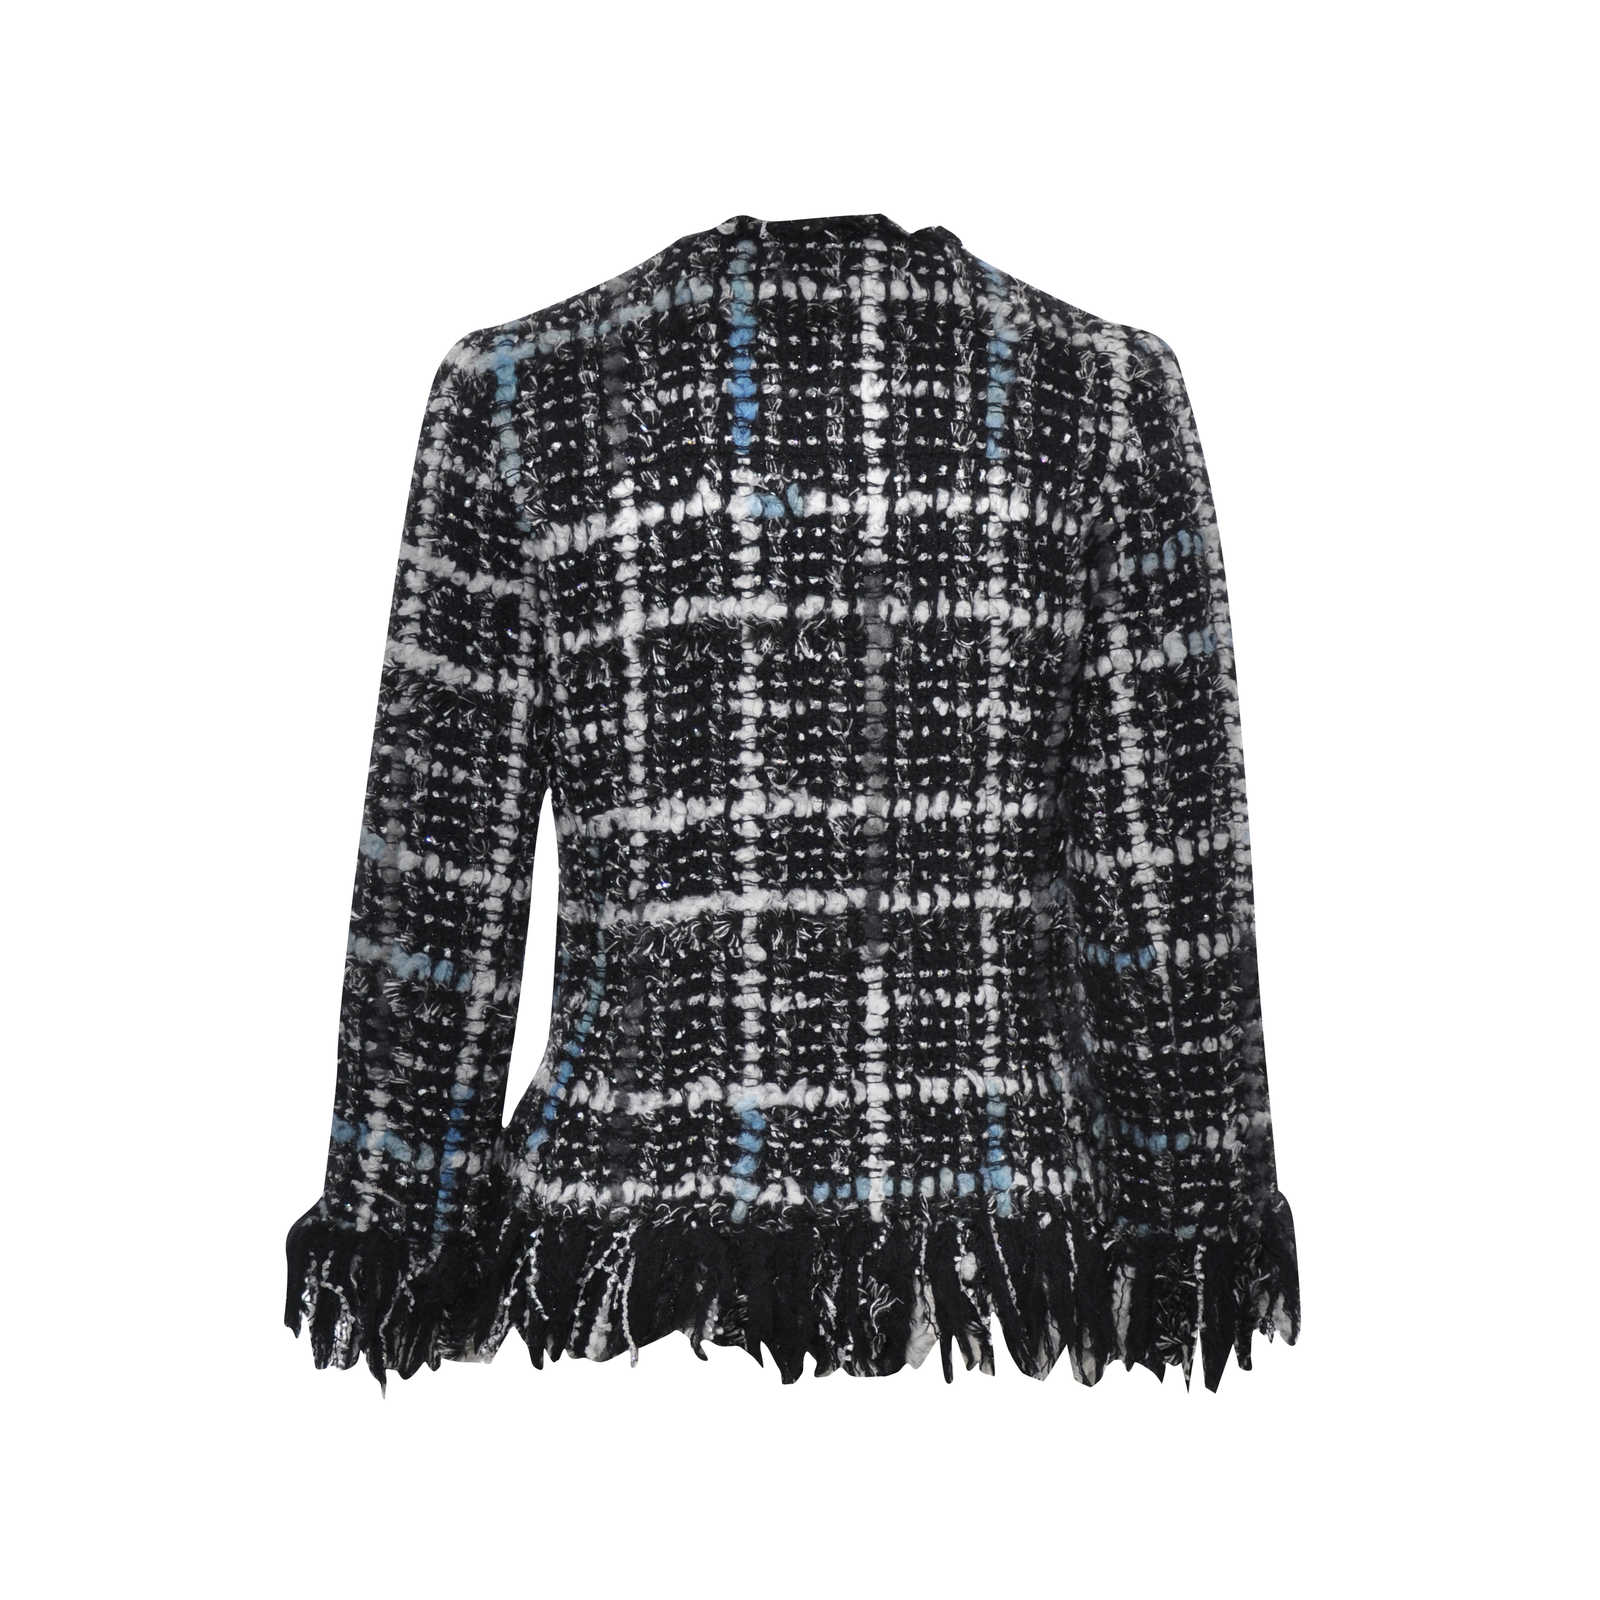 fc7a6430c03 ... Authentic Second Hand Chanel Frayed Woven Jacket (PSS-051-00128) -  Thumbnail ...